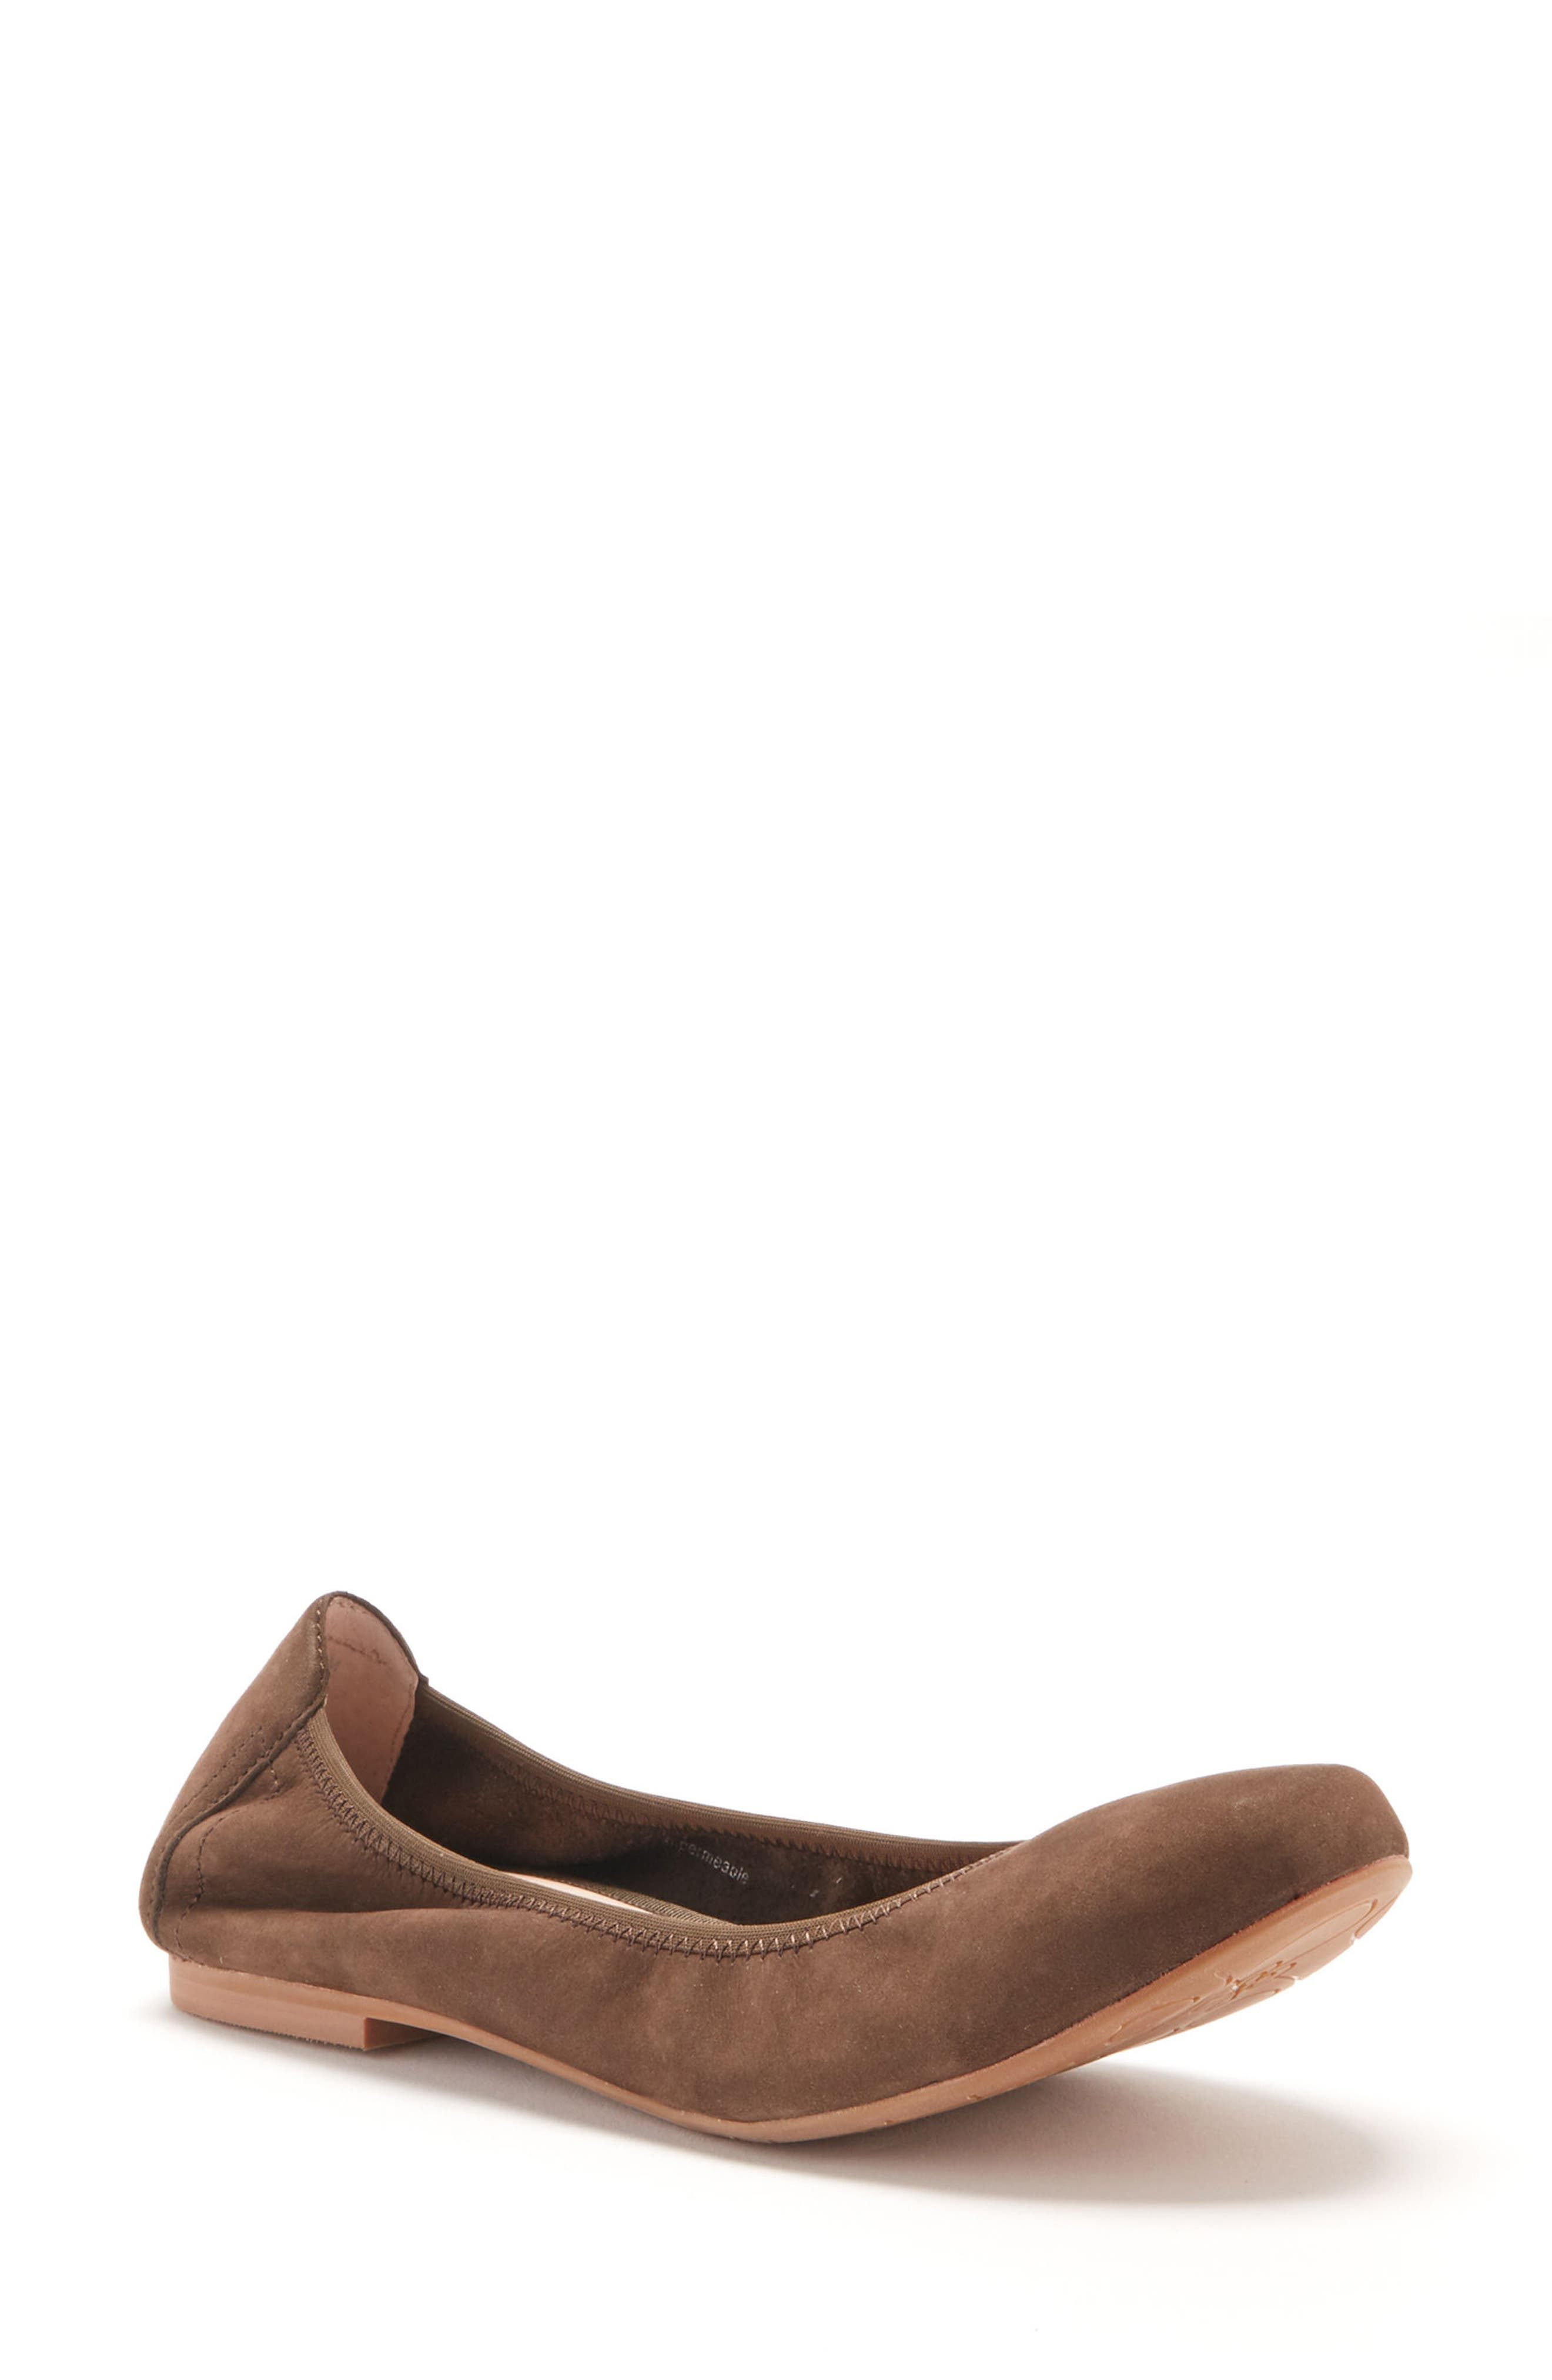 Becca Waterproof Flat,                             Main thumbnail 1, color,                             Taupe Nubuck Leather